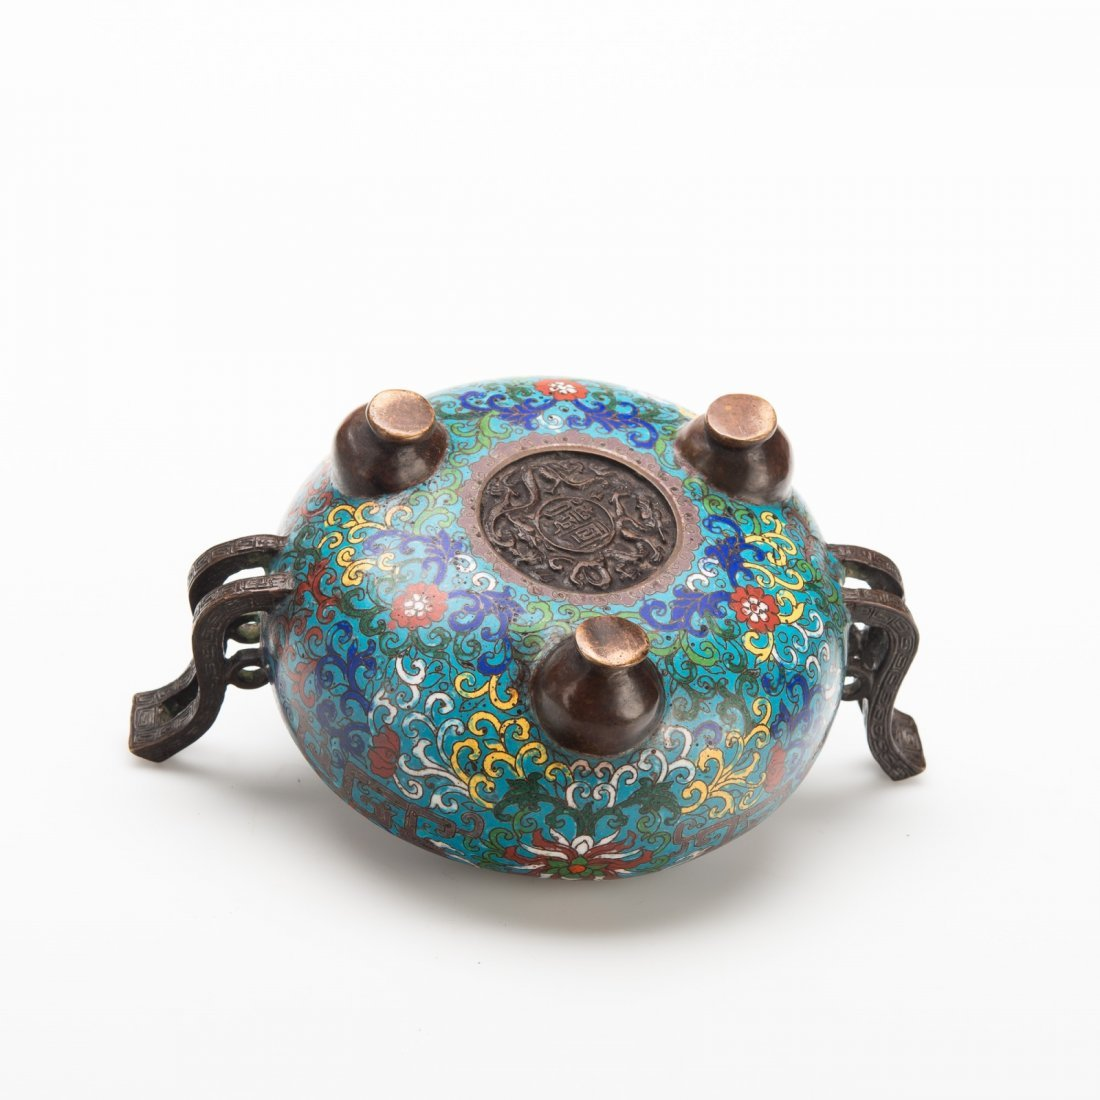 Chinese Cloisonné Tripod Censer and Cover - 3